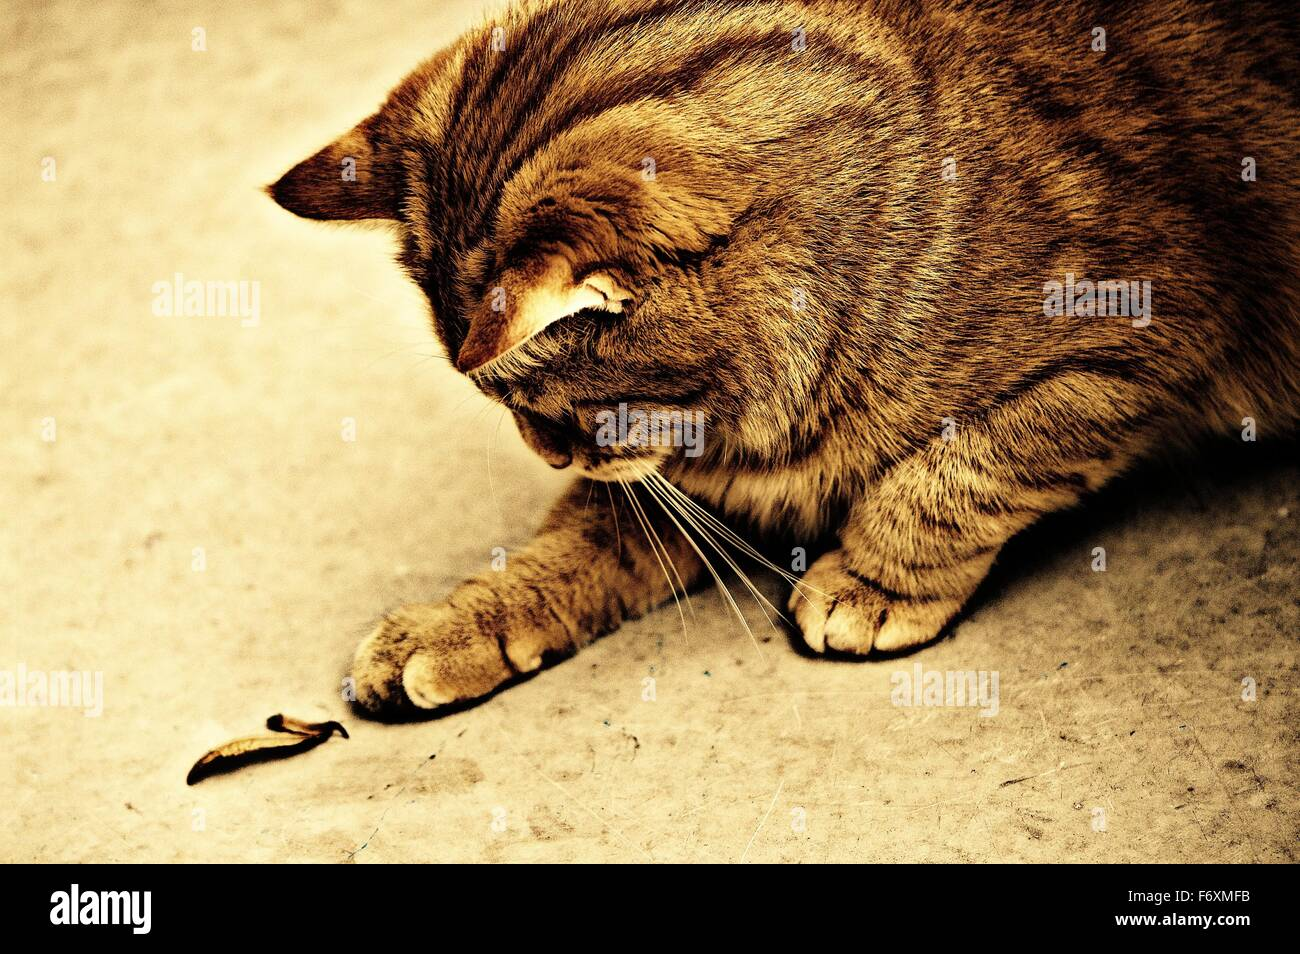 Tabby cat outside looking down and curious at a tiny leaf on the ground - Stock Image